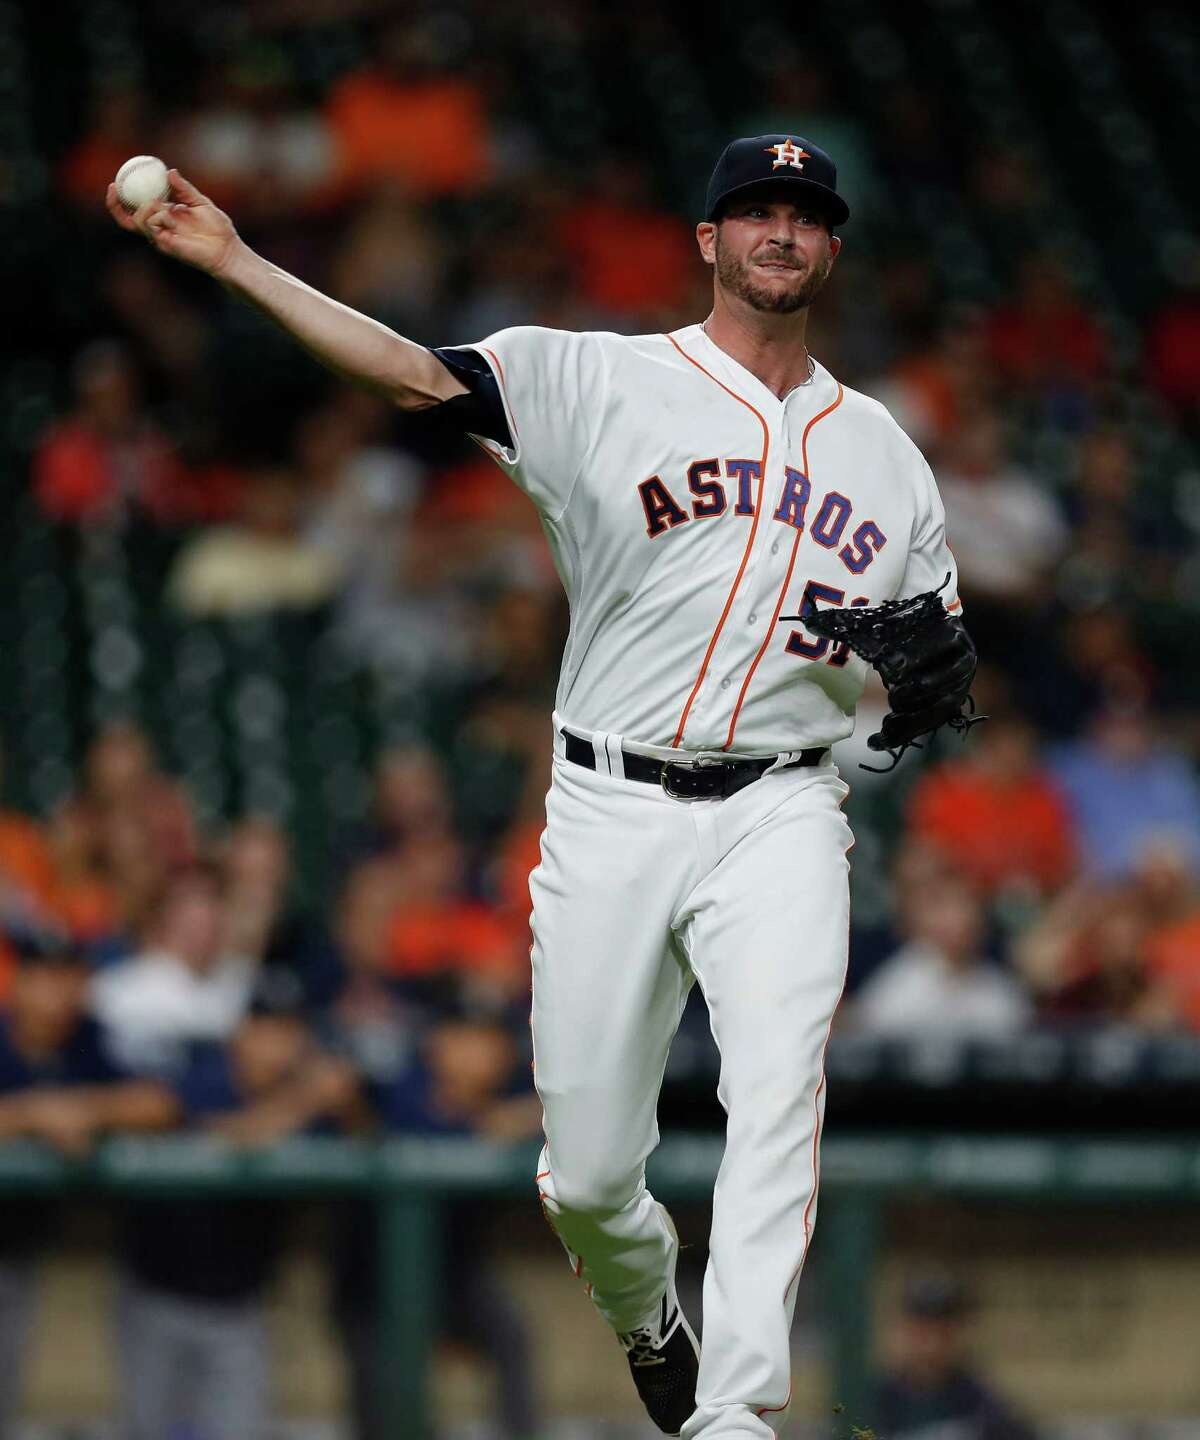 Houston Astros relief pitcher James Hoyt (51) makes a throwing error as he tried to get Seattle Mariners Norichika Aoki (8) out at first base creating a run scored to tie the game in the ninth inning of an MLB game at Minute Maid Park, Monday, Sept. 26, 2016 in Houston.